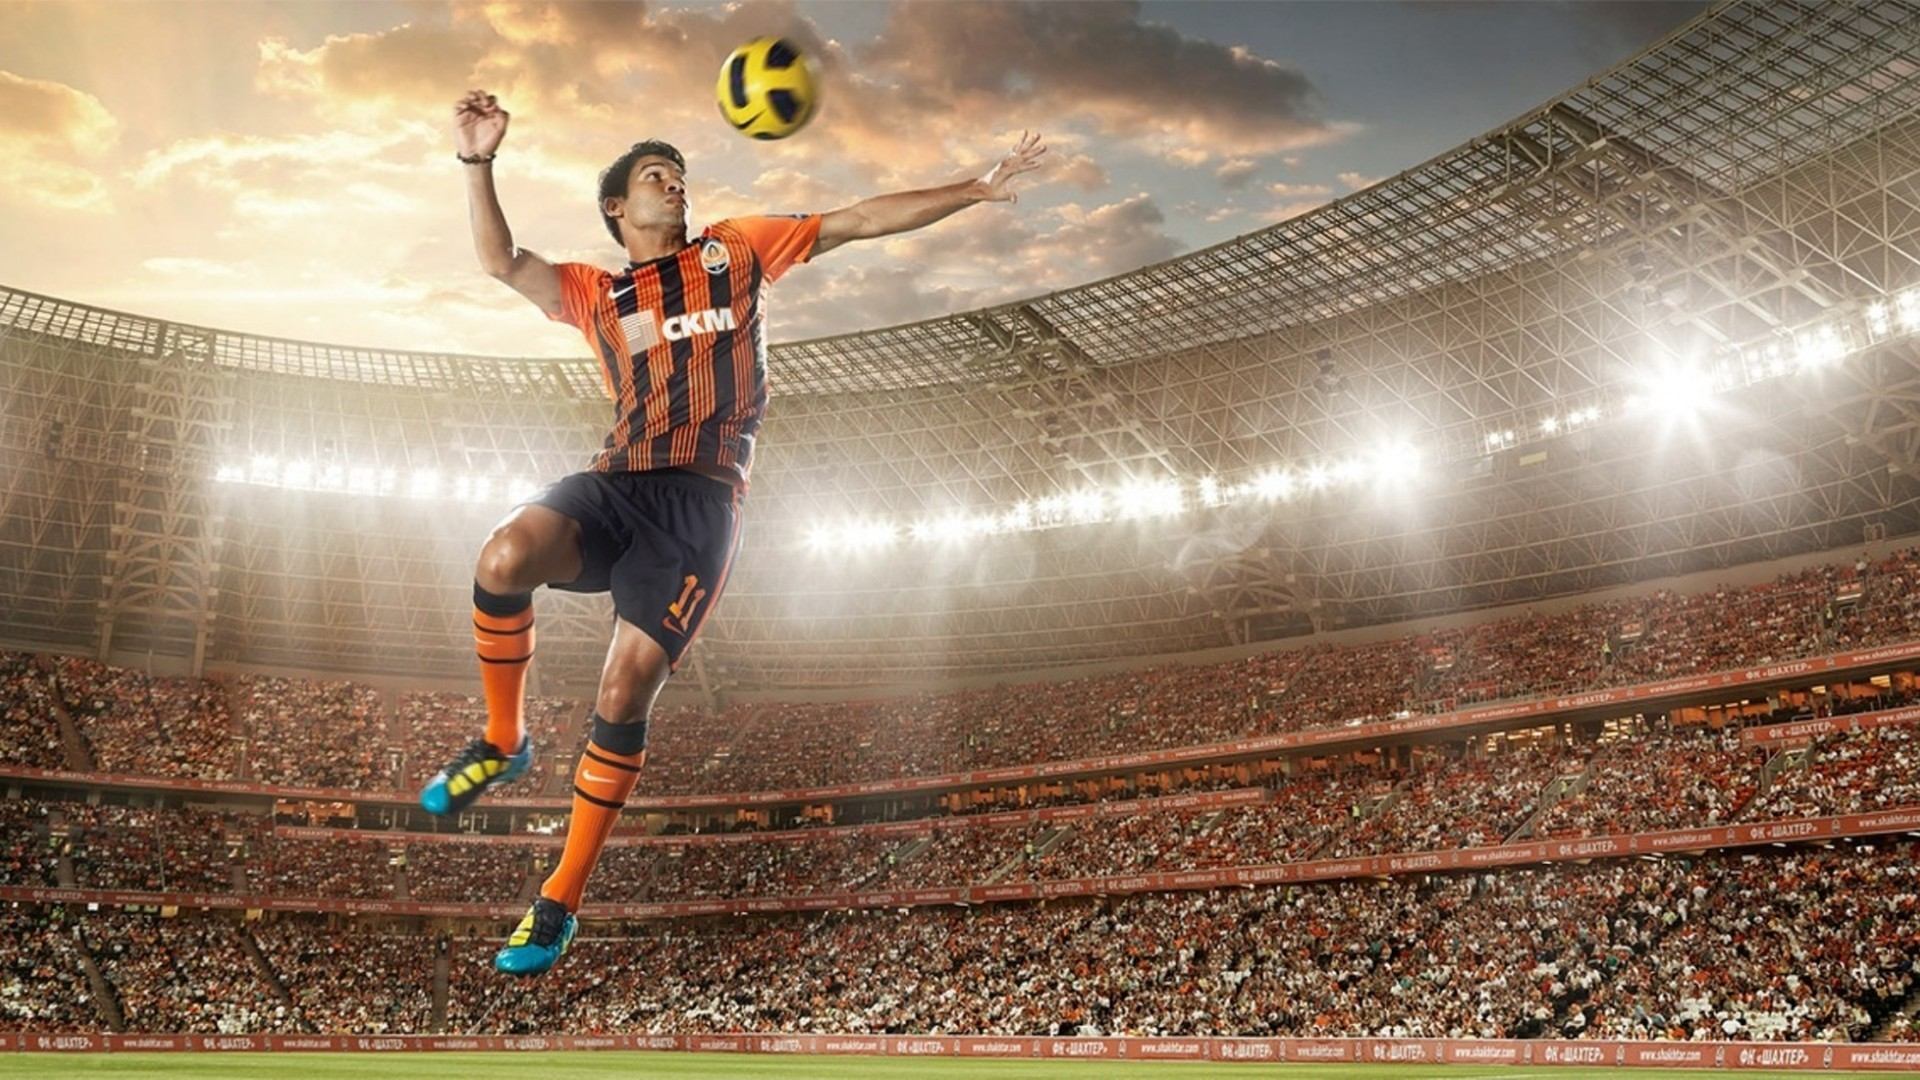 Soccer player wallpapers 2013